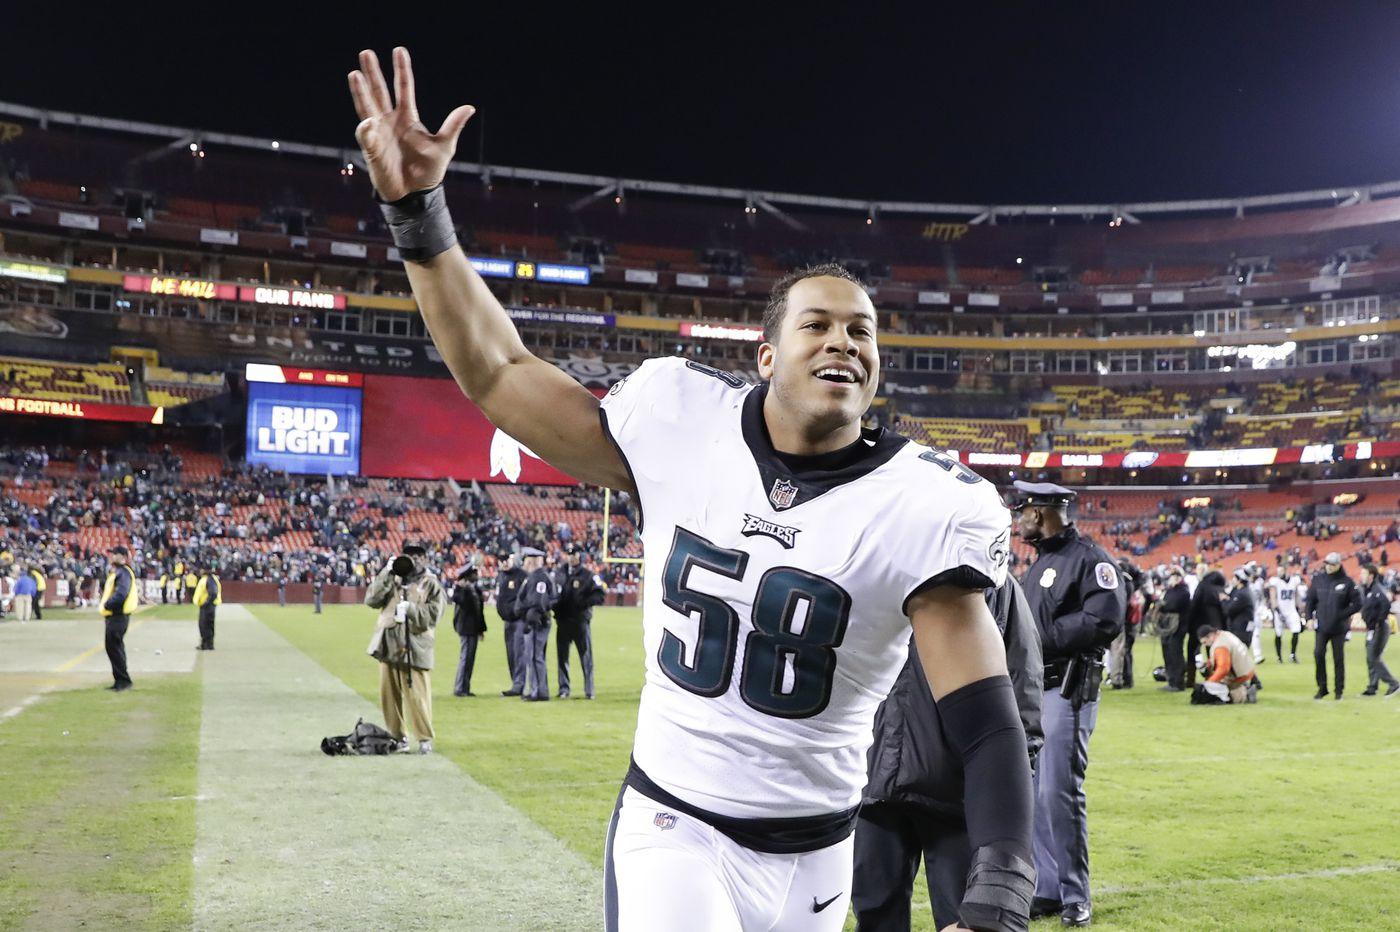 Eagles linebacker Jordan Hicks is finally healthy for a playoff game, and he's pretty excited about it